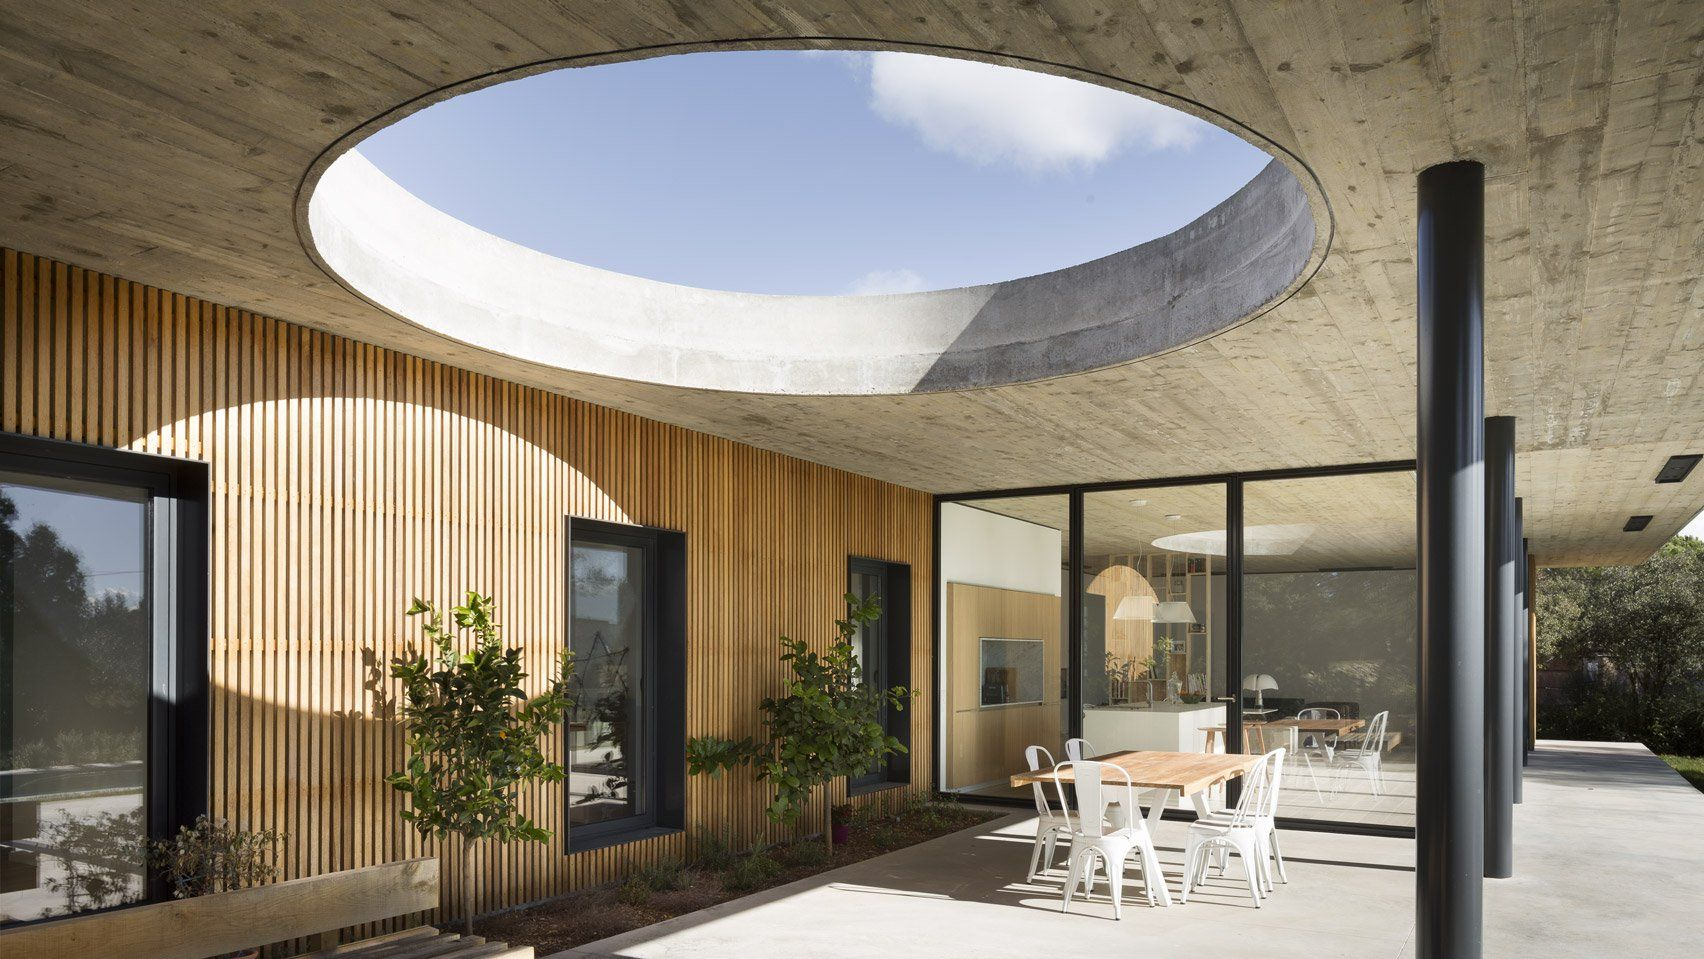 15 Gorgeous Concrete Houses With Unexpected Designs Skylight Architecture Concrete Houses Architecture House